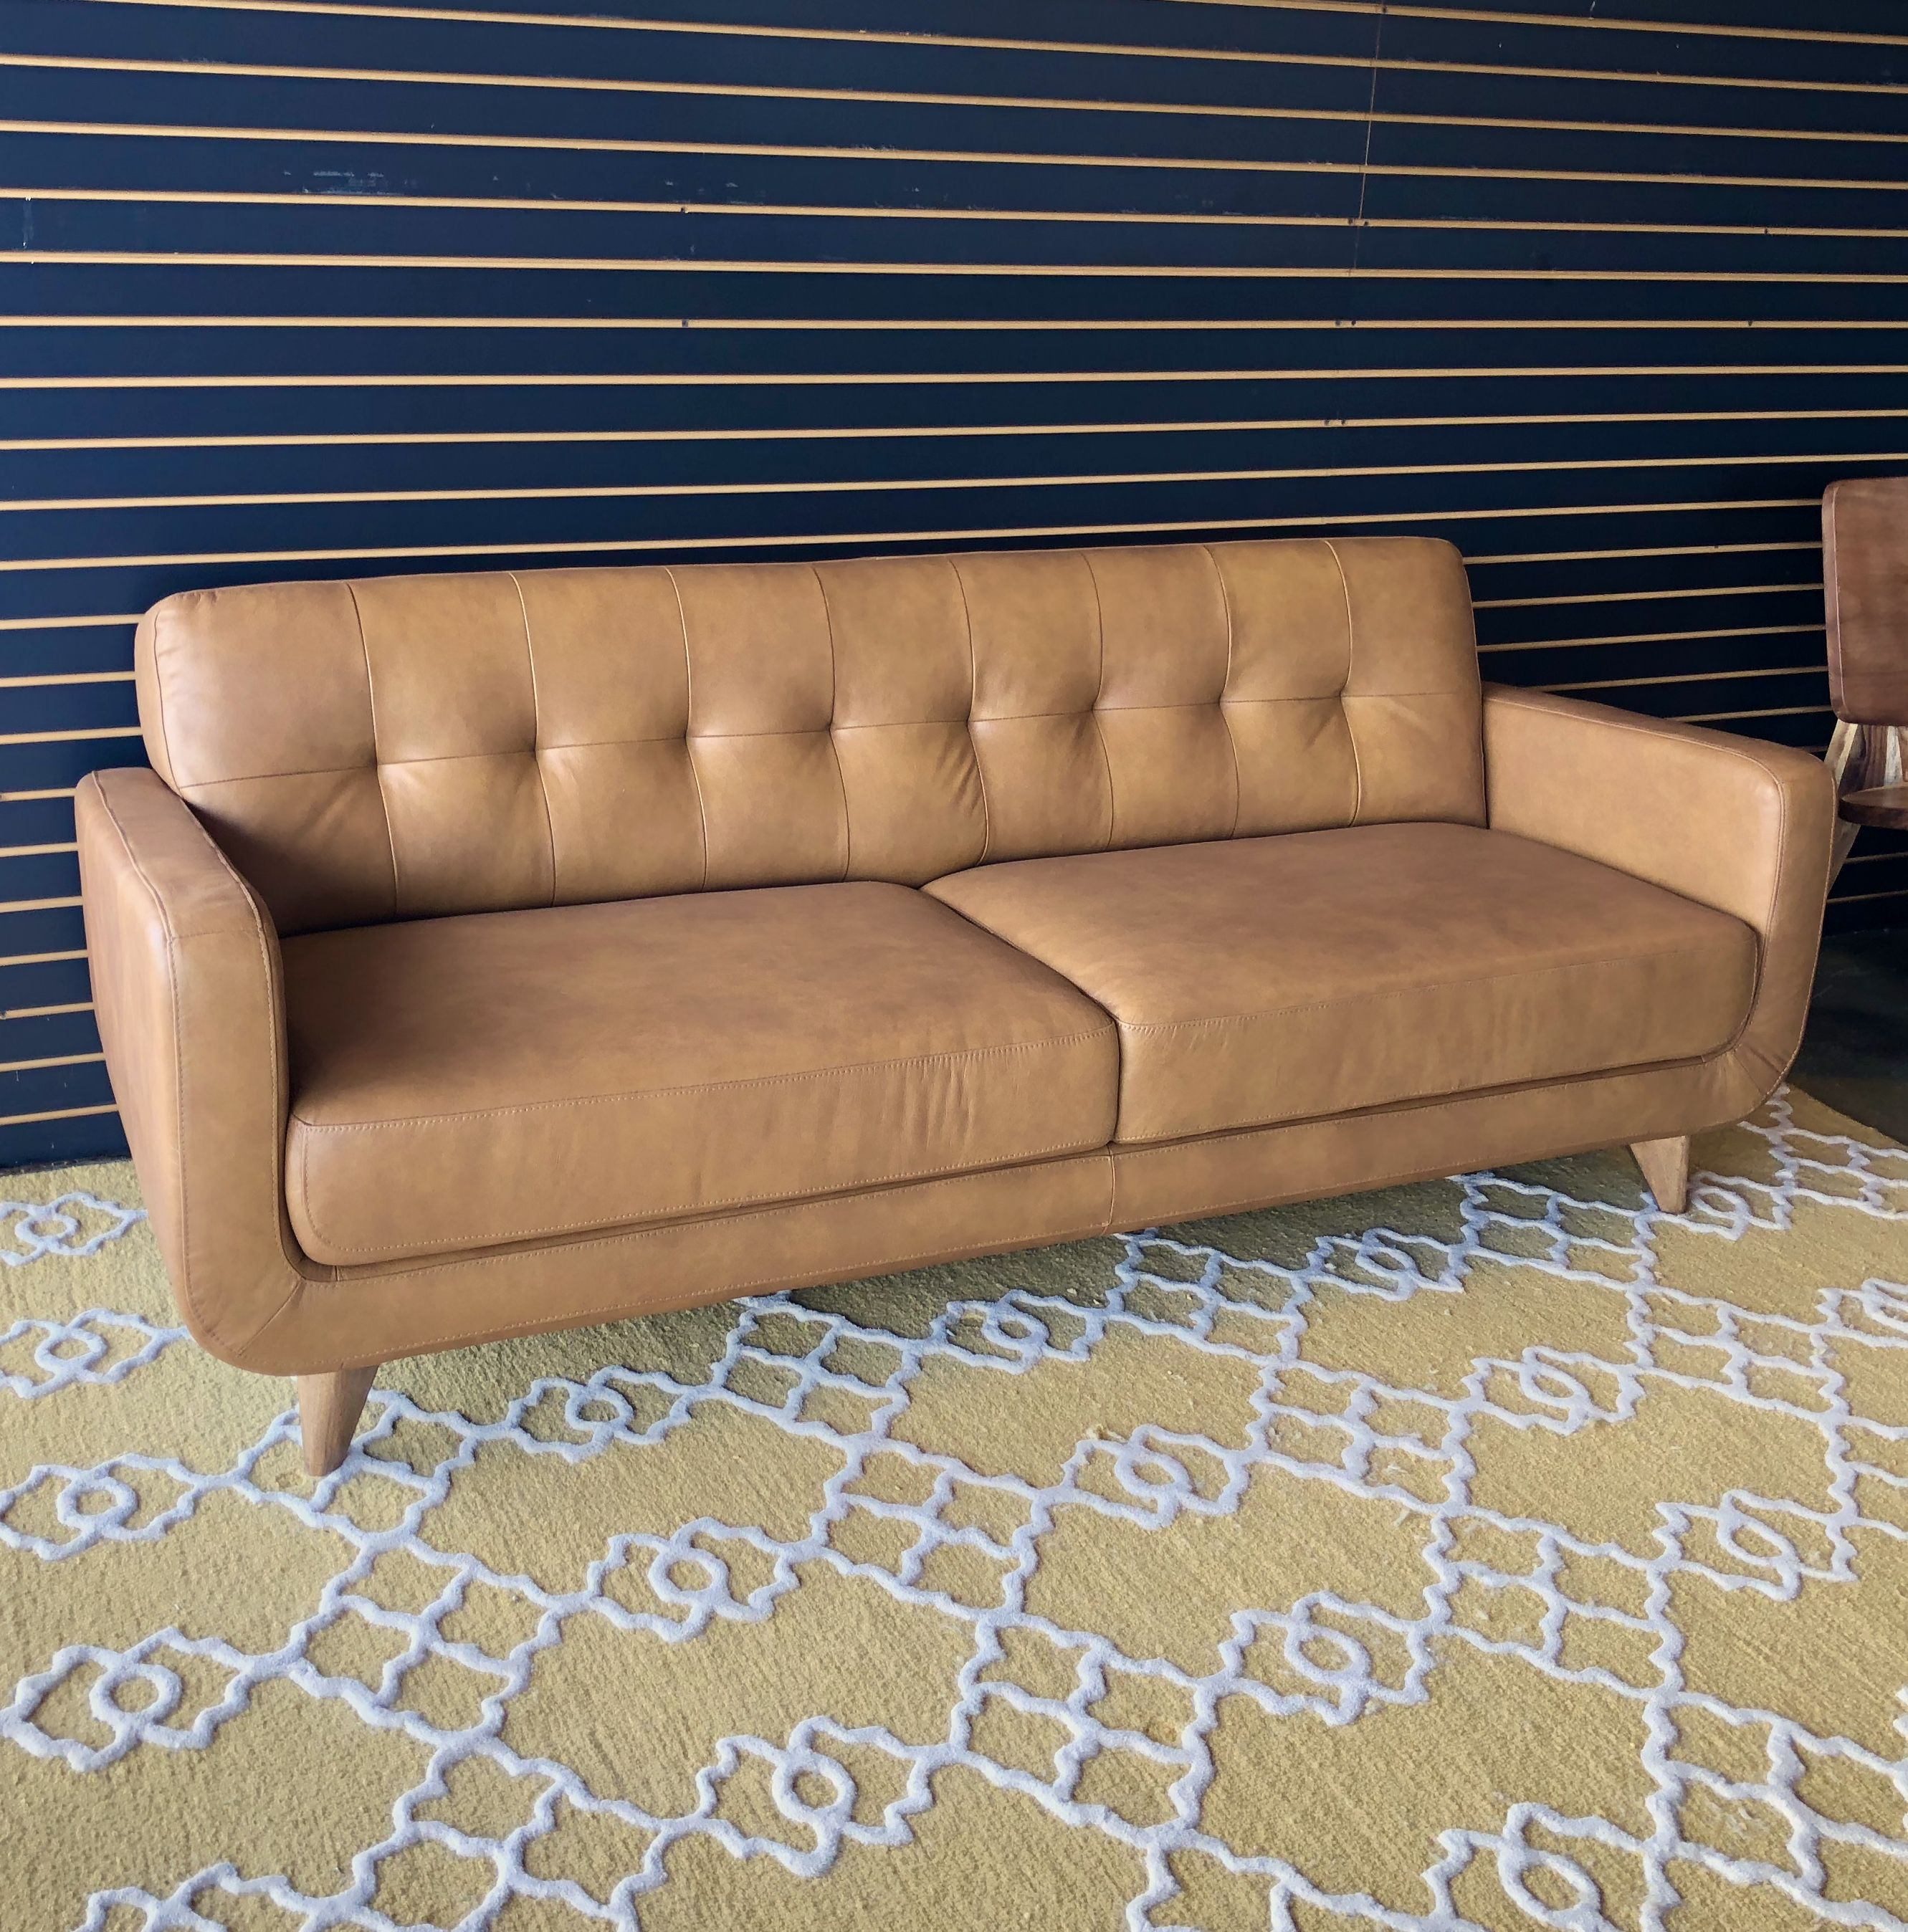 Mid Century Modern Furniture Leather Sofa By Midinmod Furniture